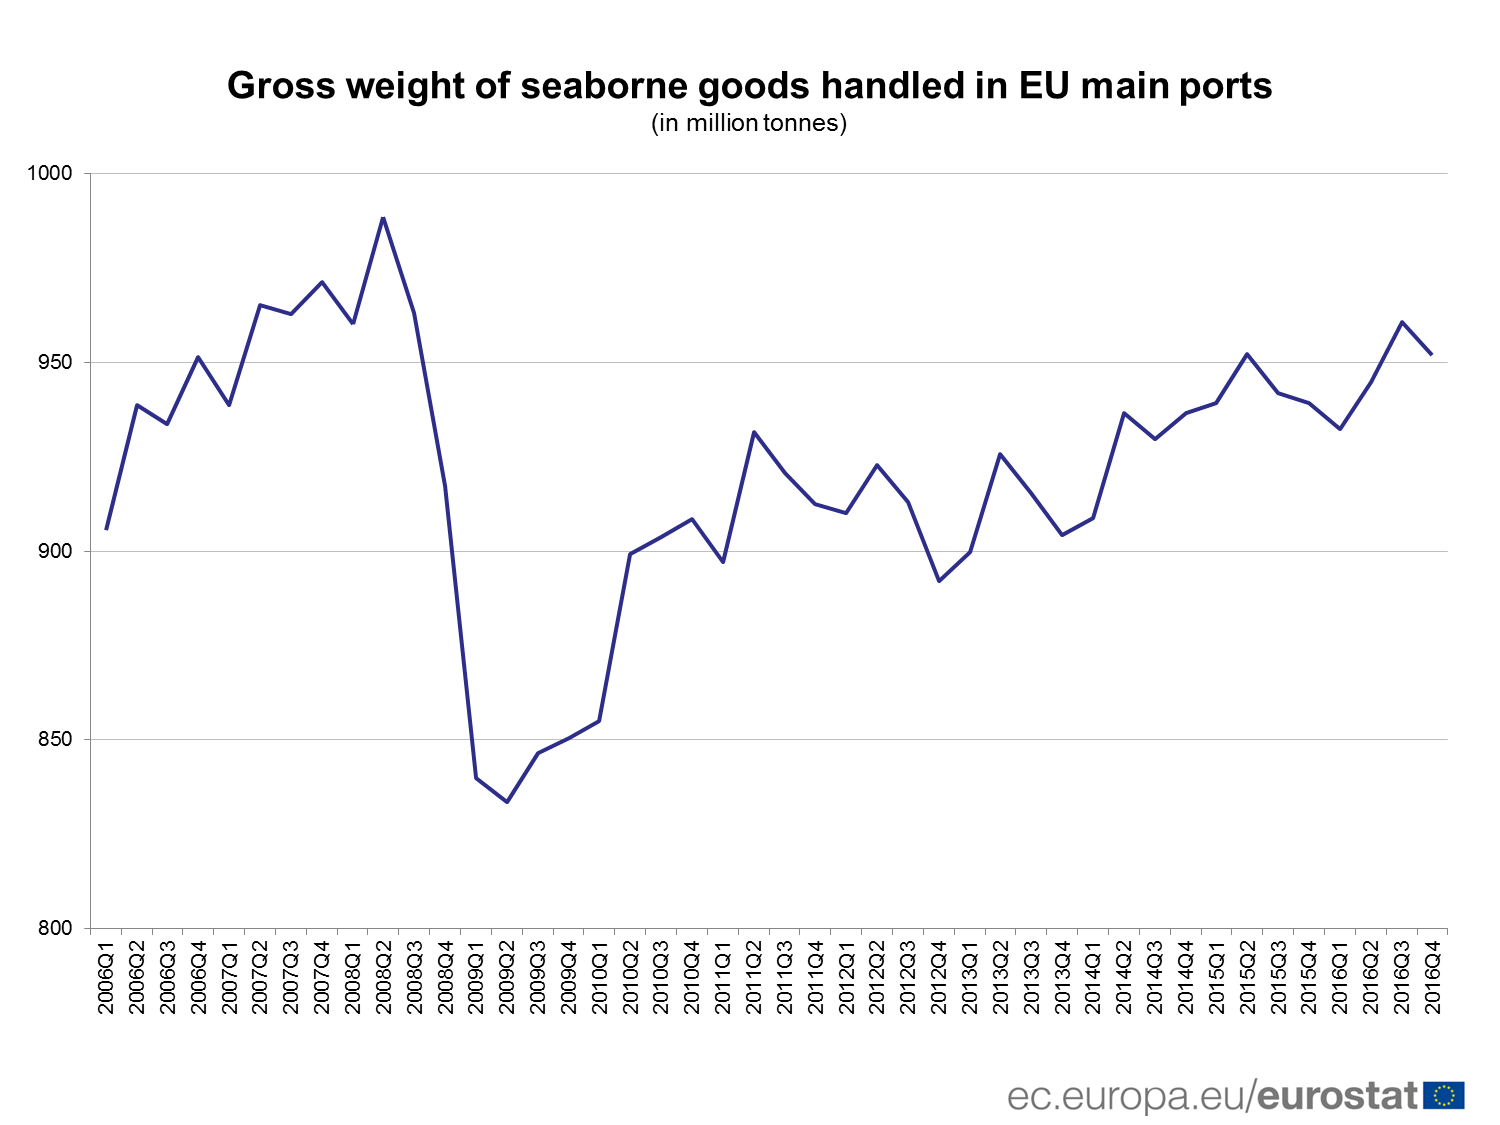 Gross weight seaborne goods handled in EU main ports